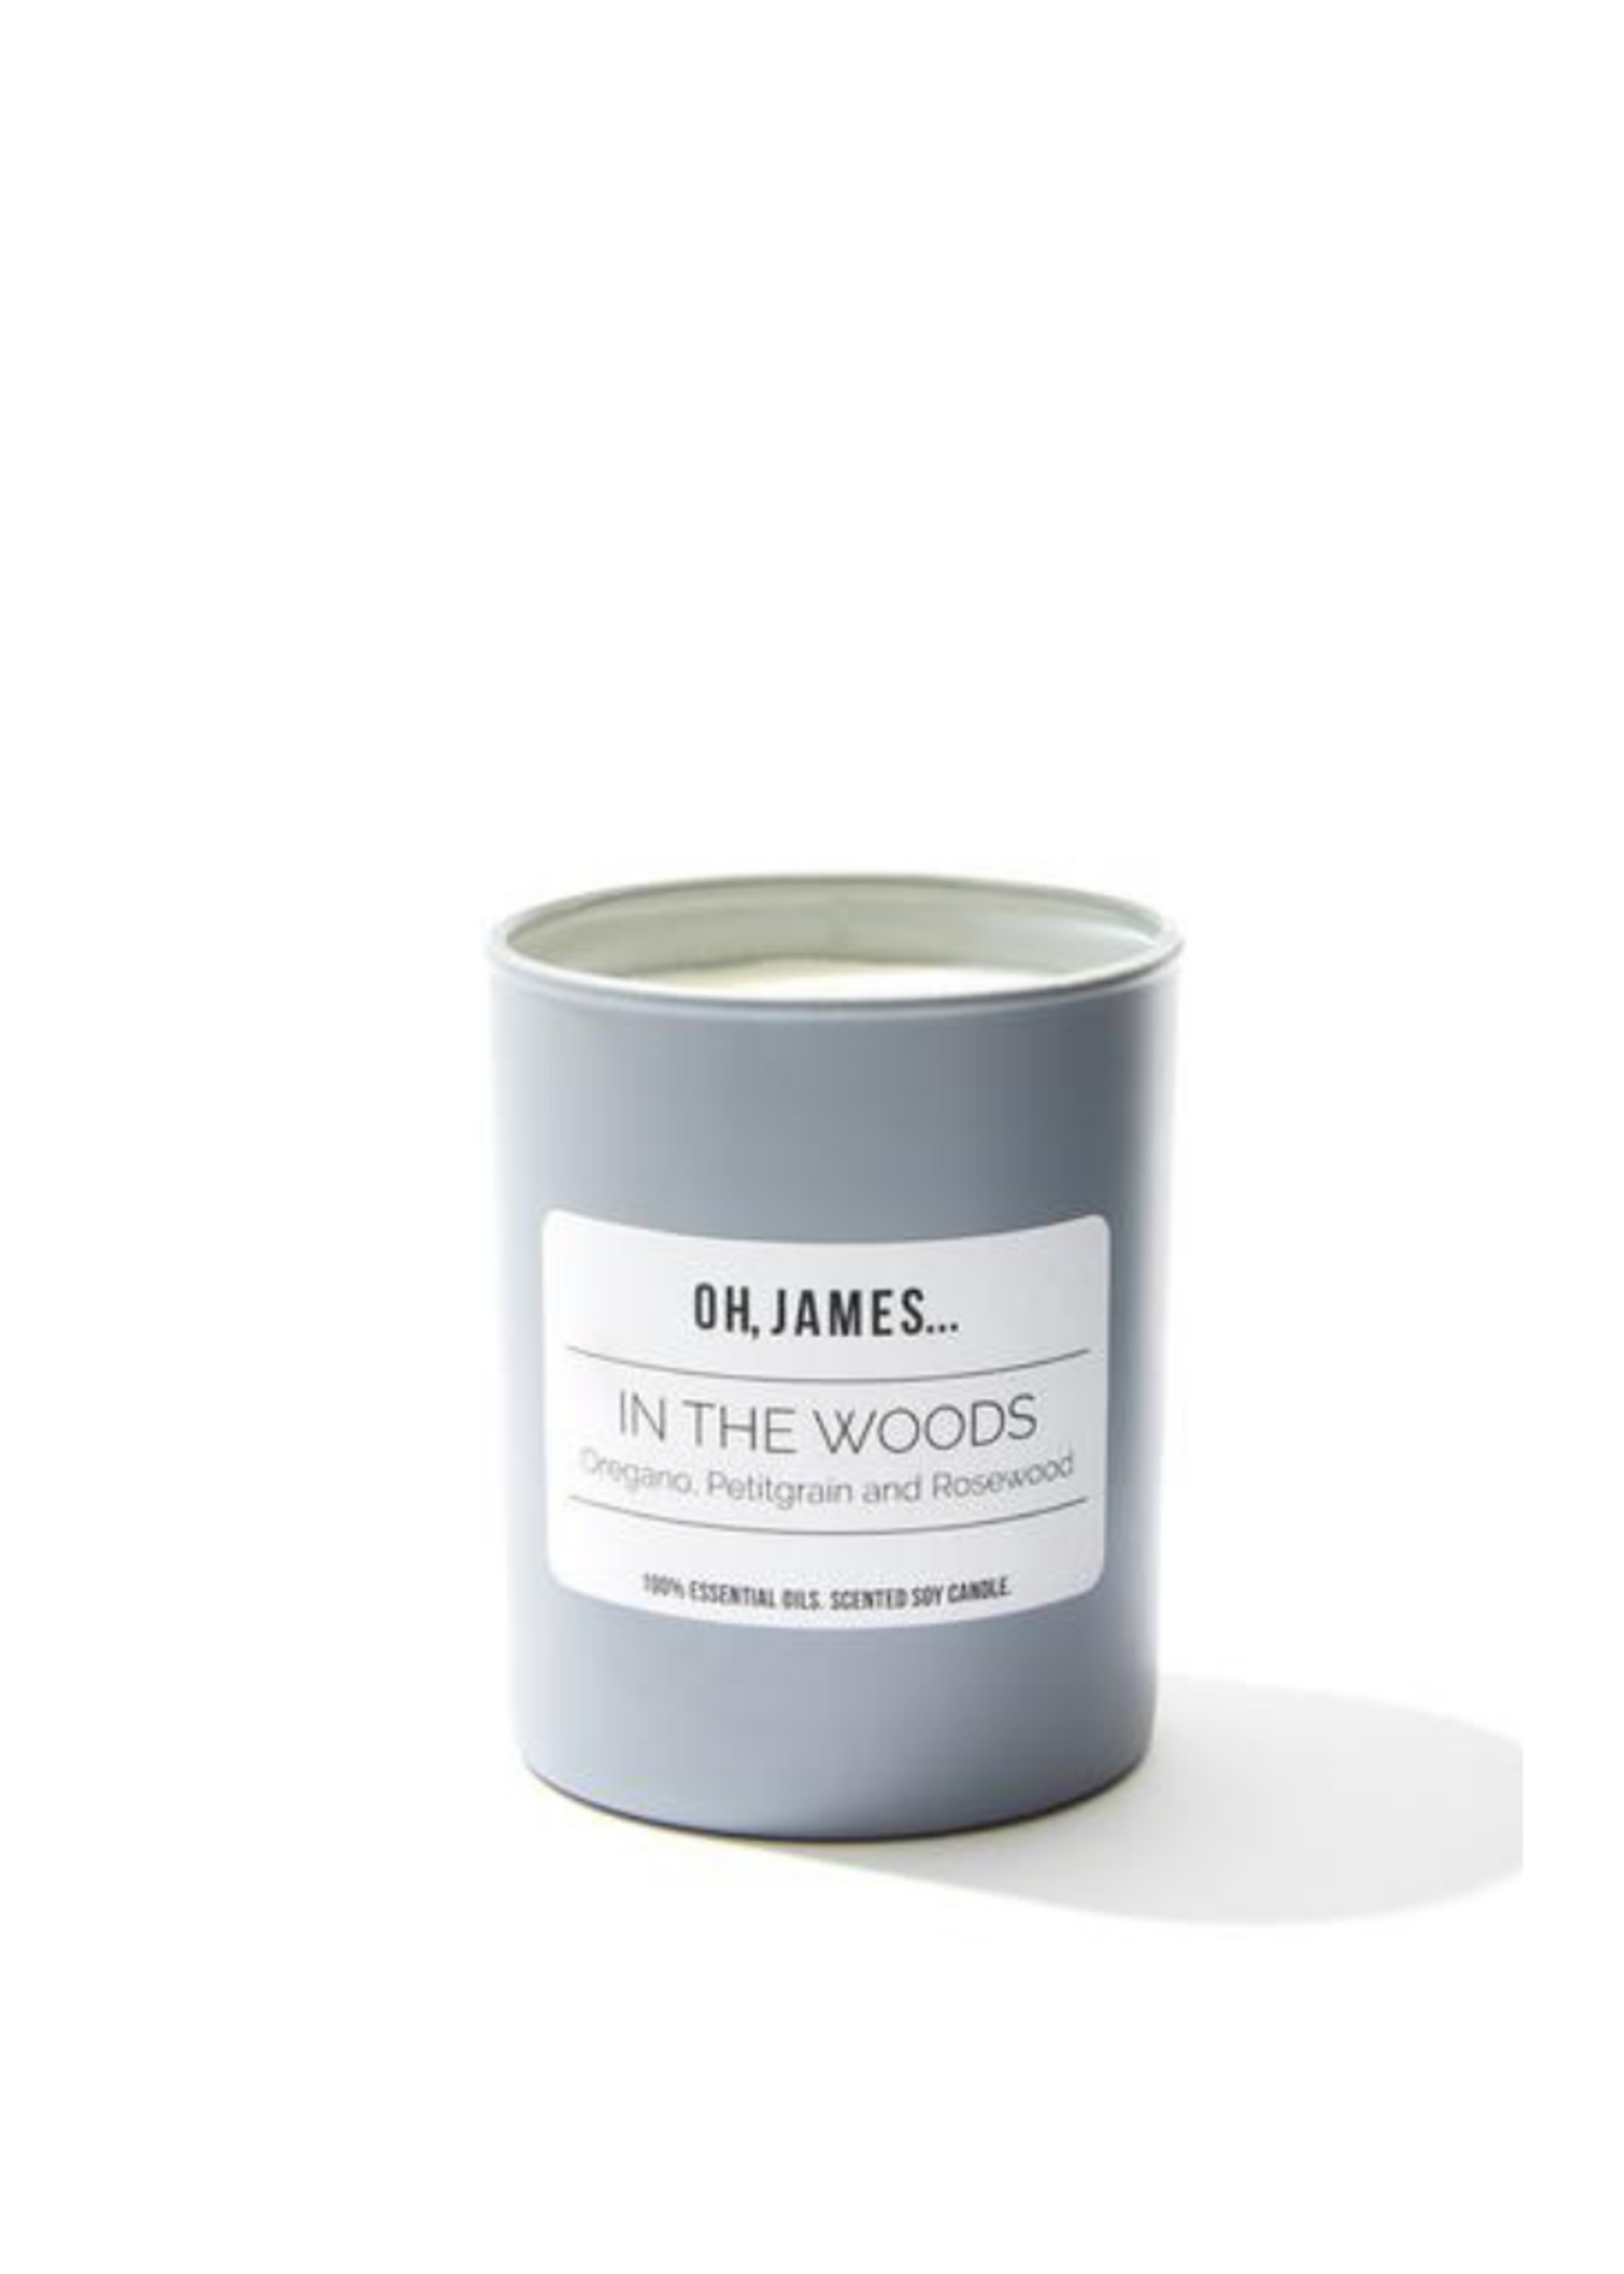 Oh, James In The Woods Candle